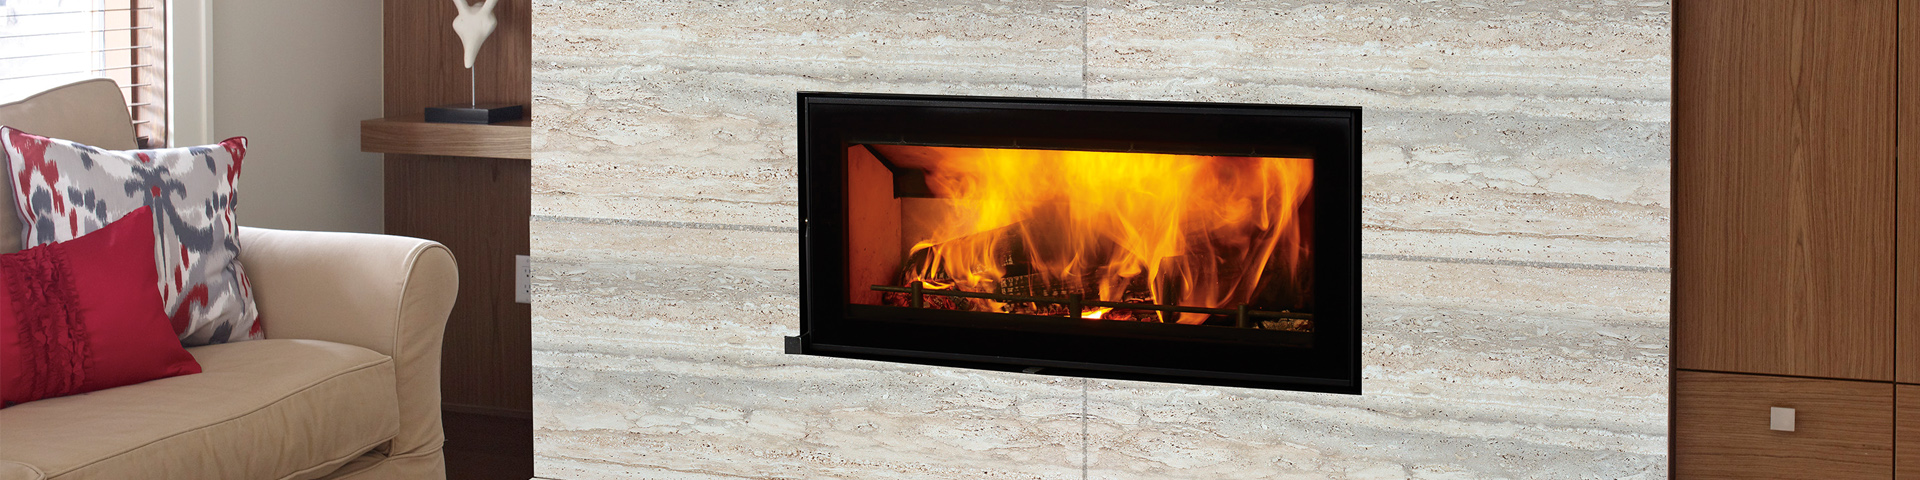 Clean Air Large Wood Fireplace Montrose From Nz